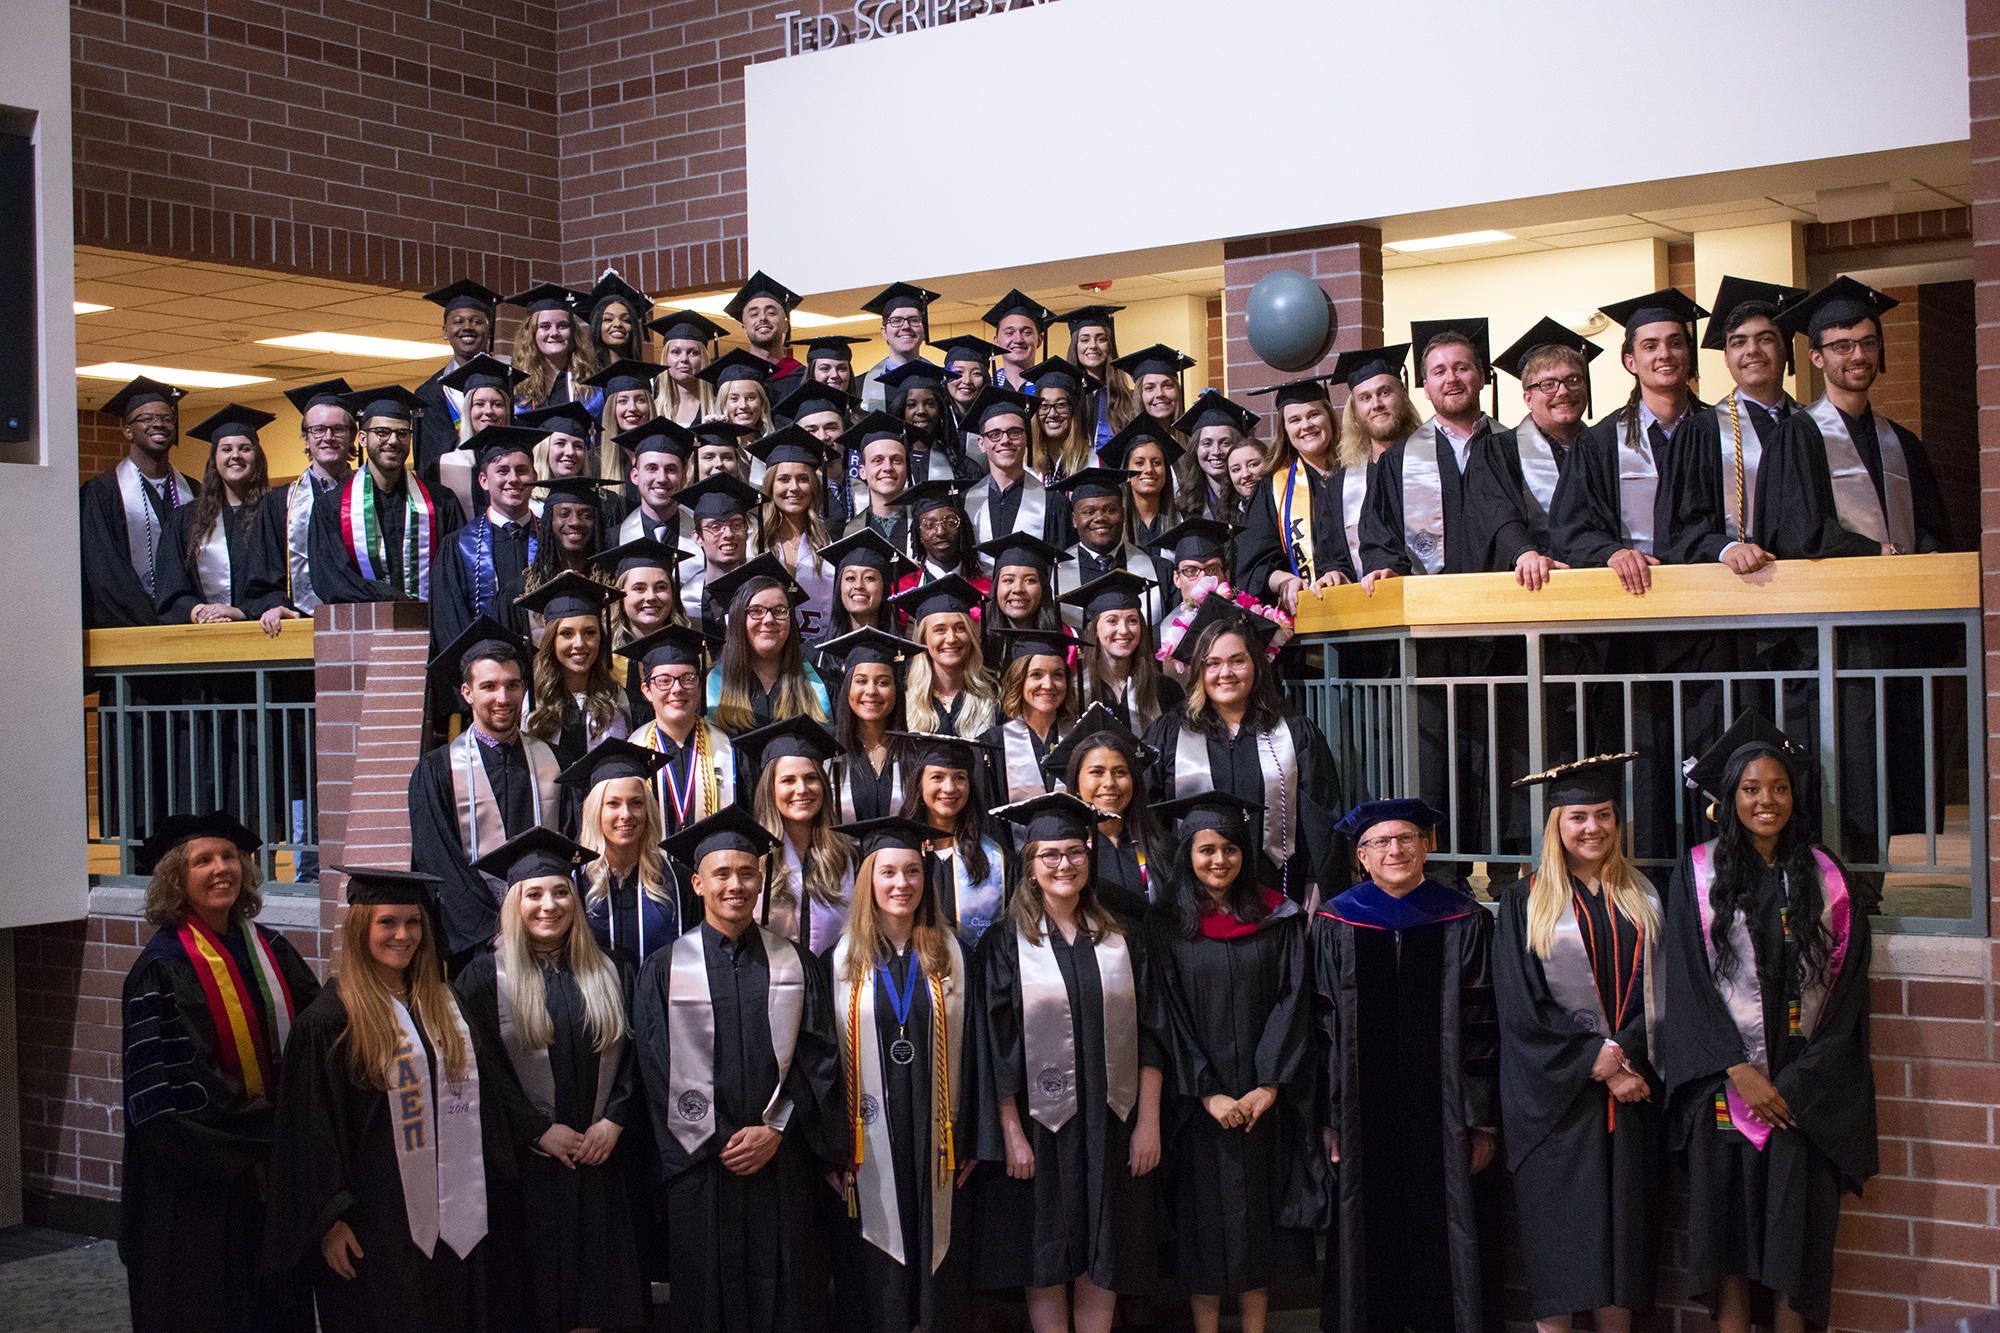 Graduation Ceremony Reception: Spring Class Of 2018 Rings In Commencement With Grad